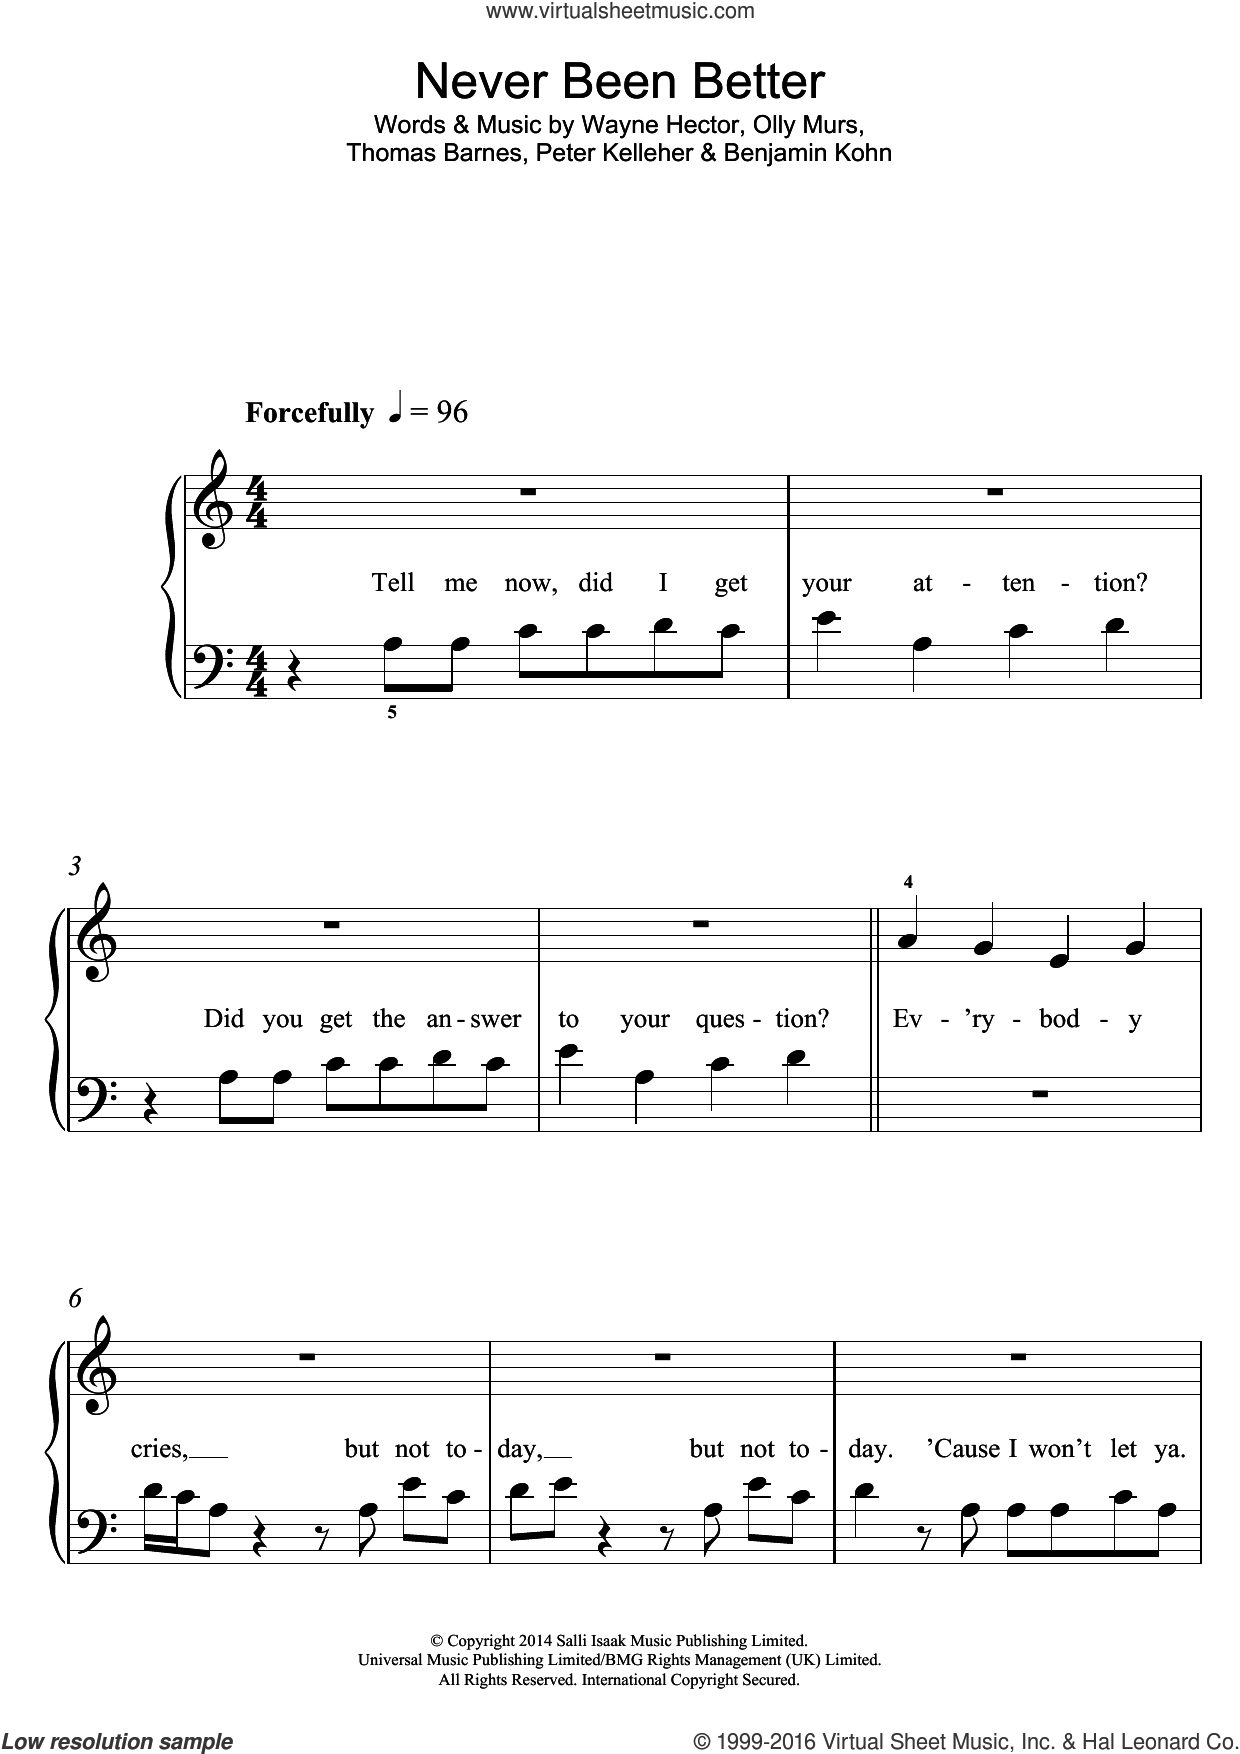 Never Been Better sheet music for voice, piano or guitar by Olly Murs, Benjamin Kohn, Peter Kelleher, Thomas Barnes and Wayne Hector, intermediate skill level